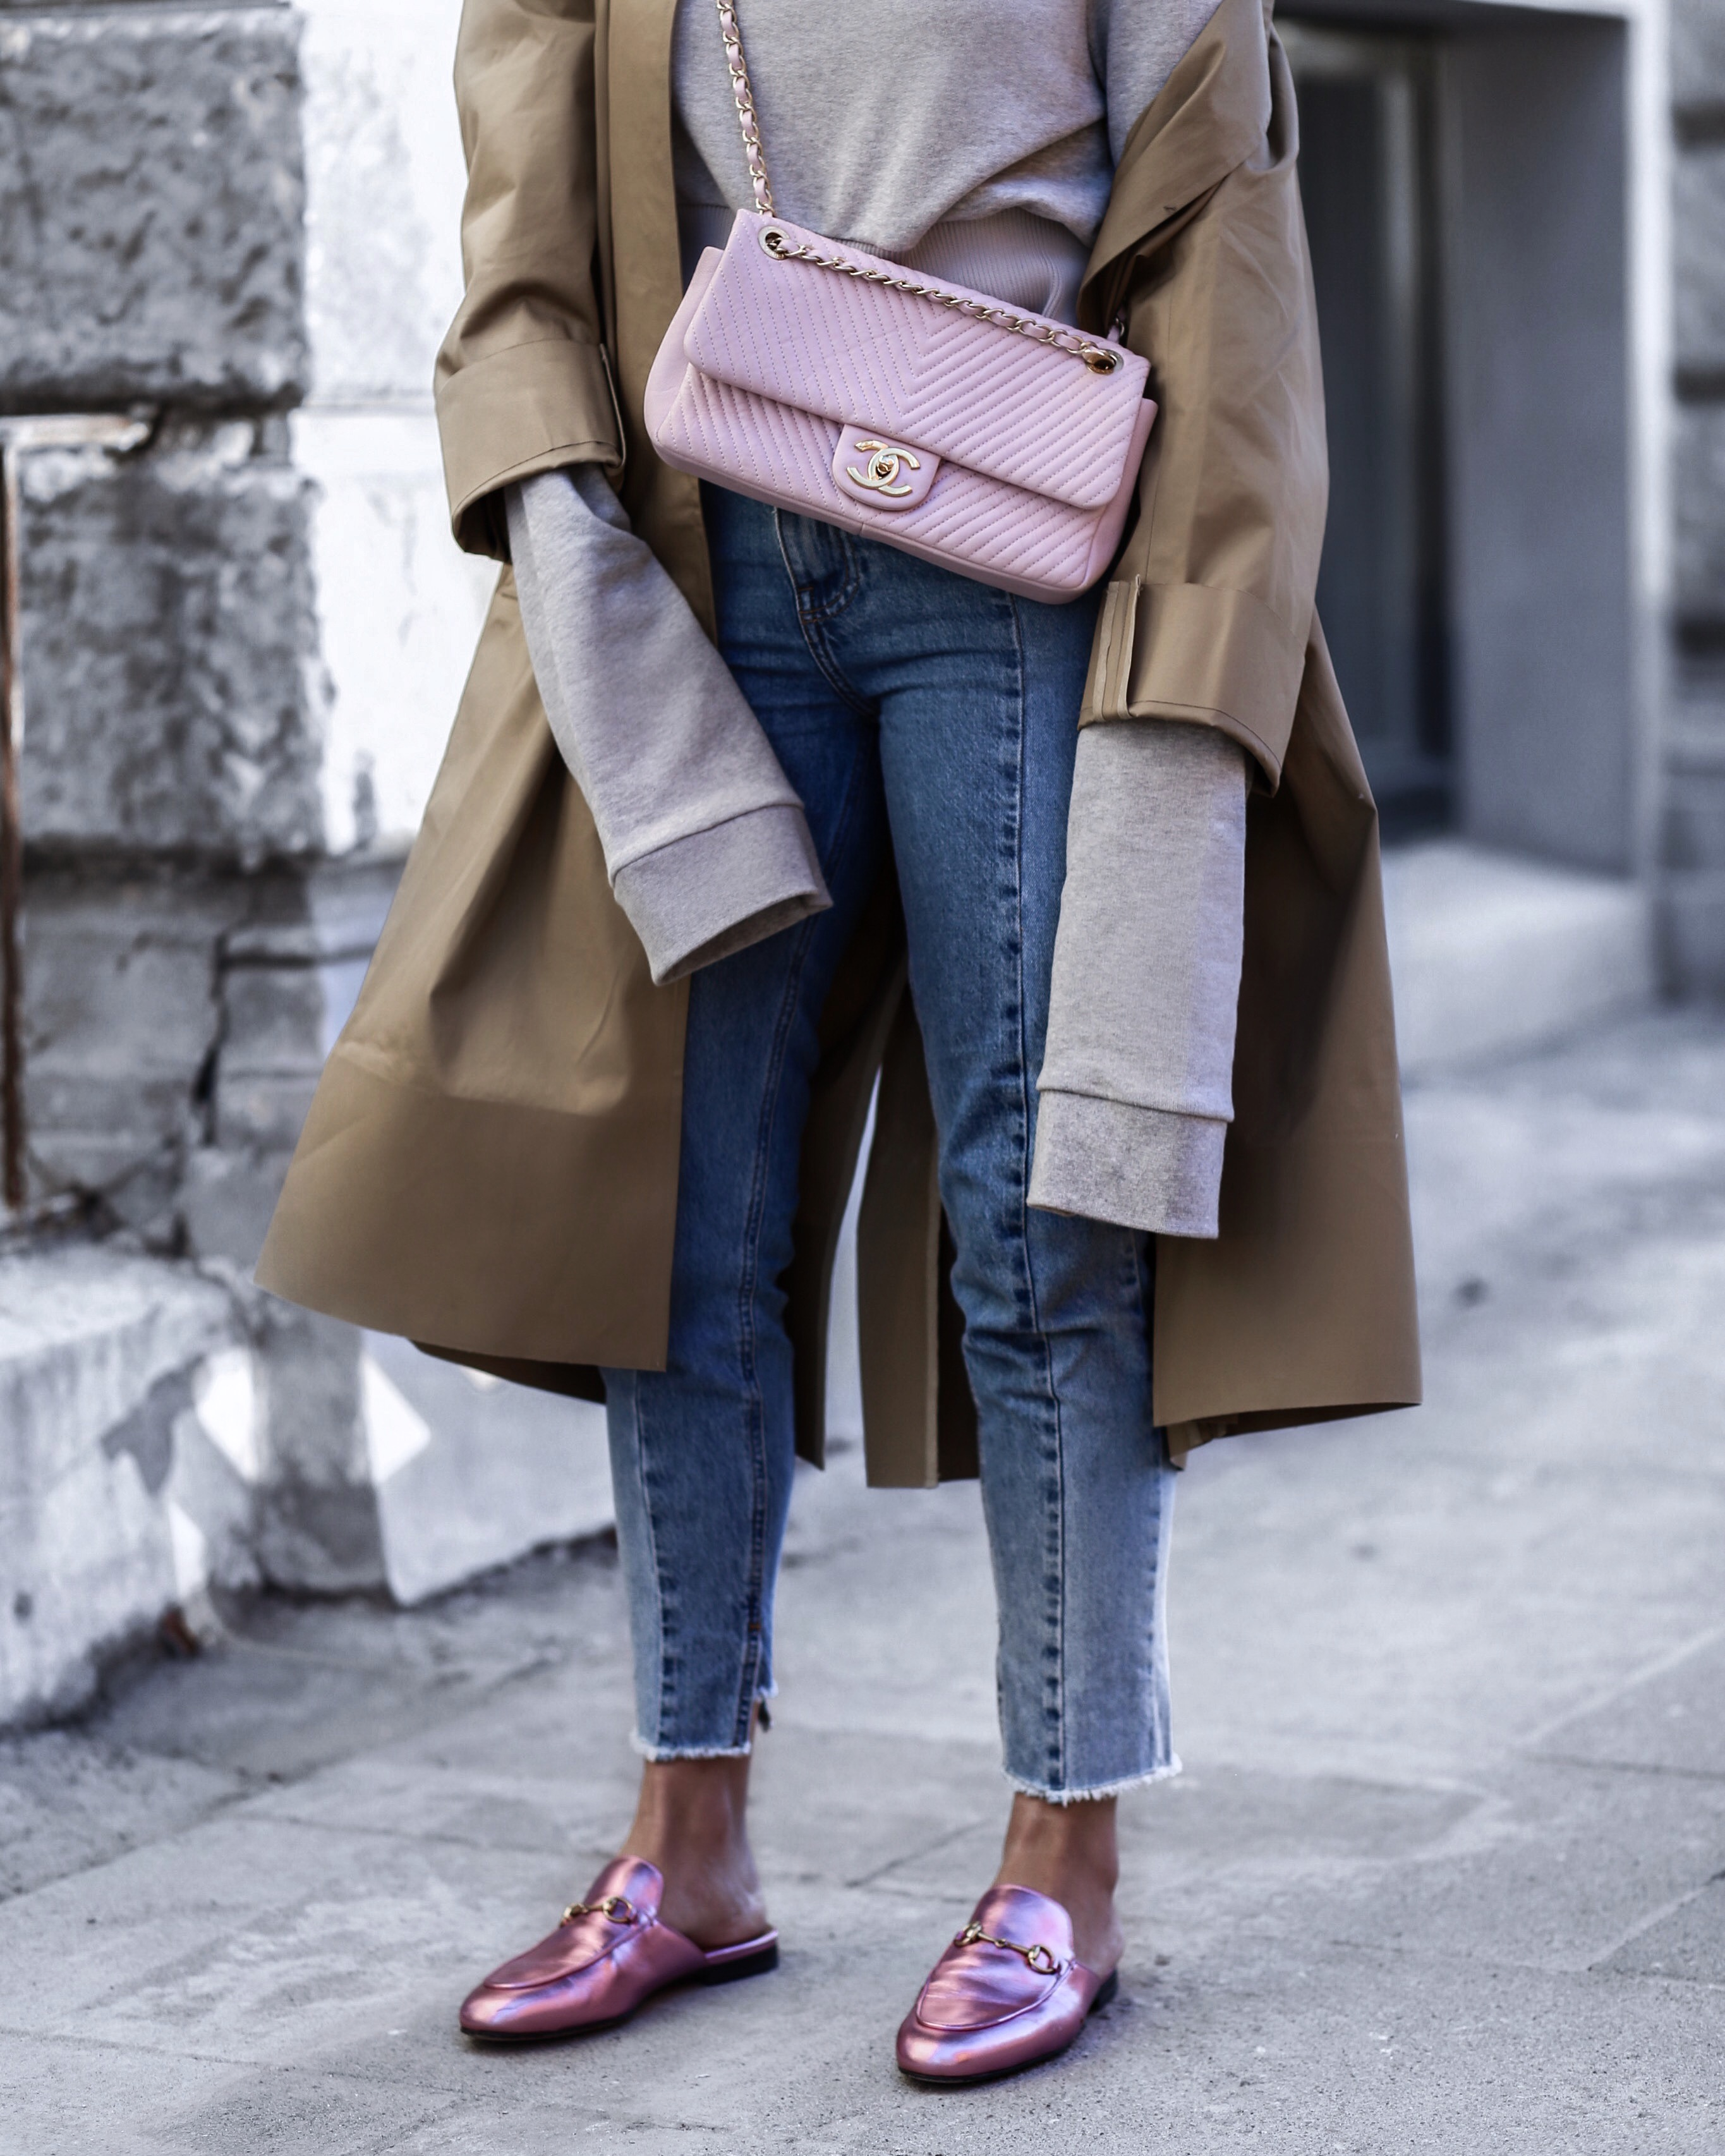 vetements_coat_chanel_bag_pink